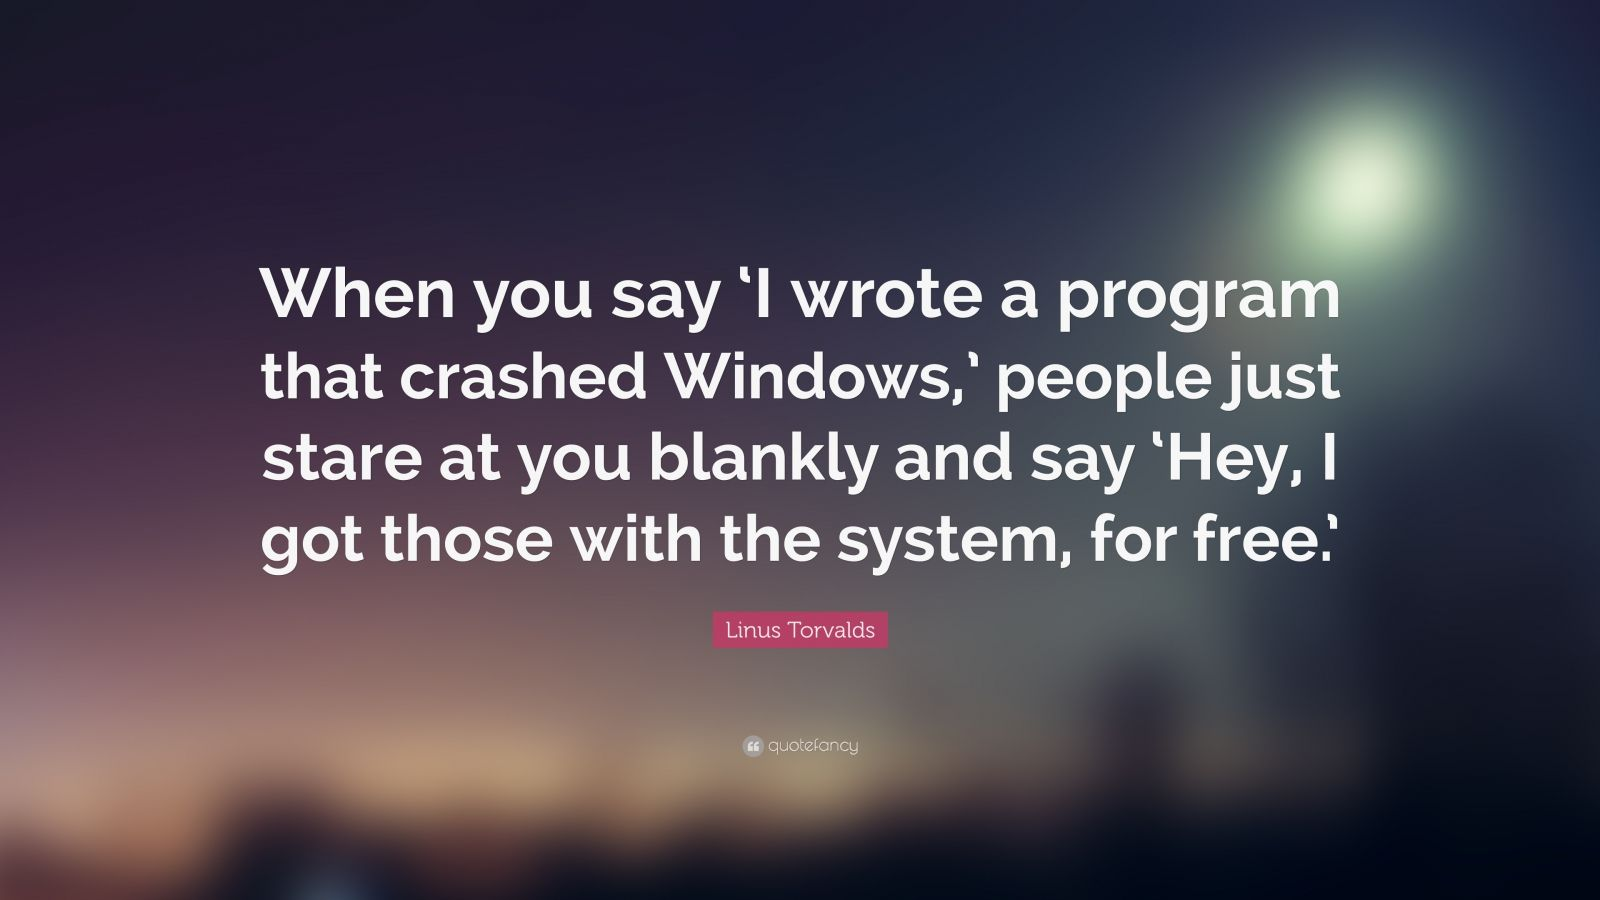 """Linus Torvalds Quote: """"When you say 'I wrote a program that crashed Windows,' people just stare at you blankly and say 'Hey, I got those with the system, for free.'"""""""